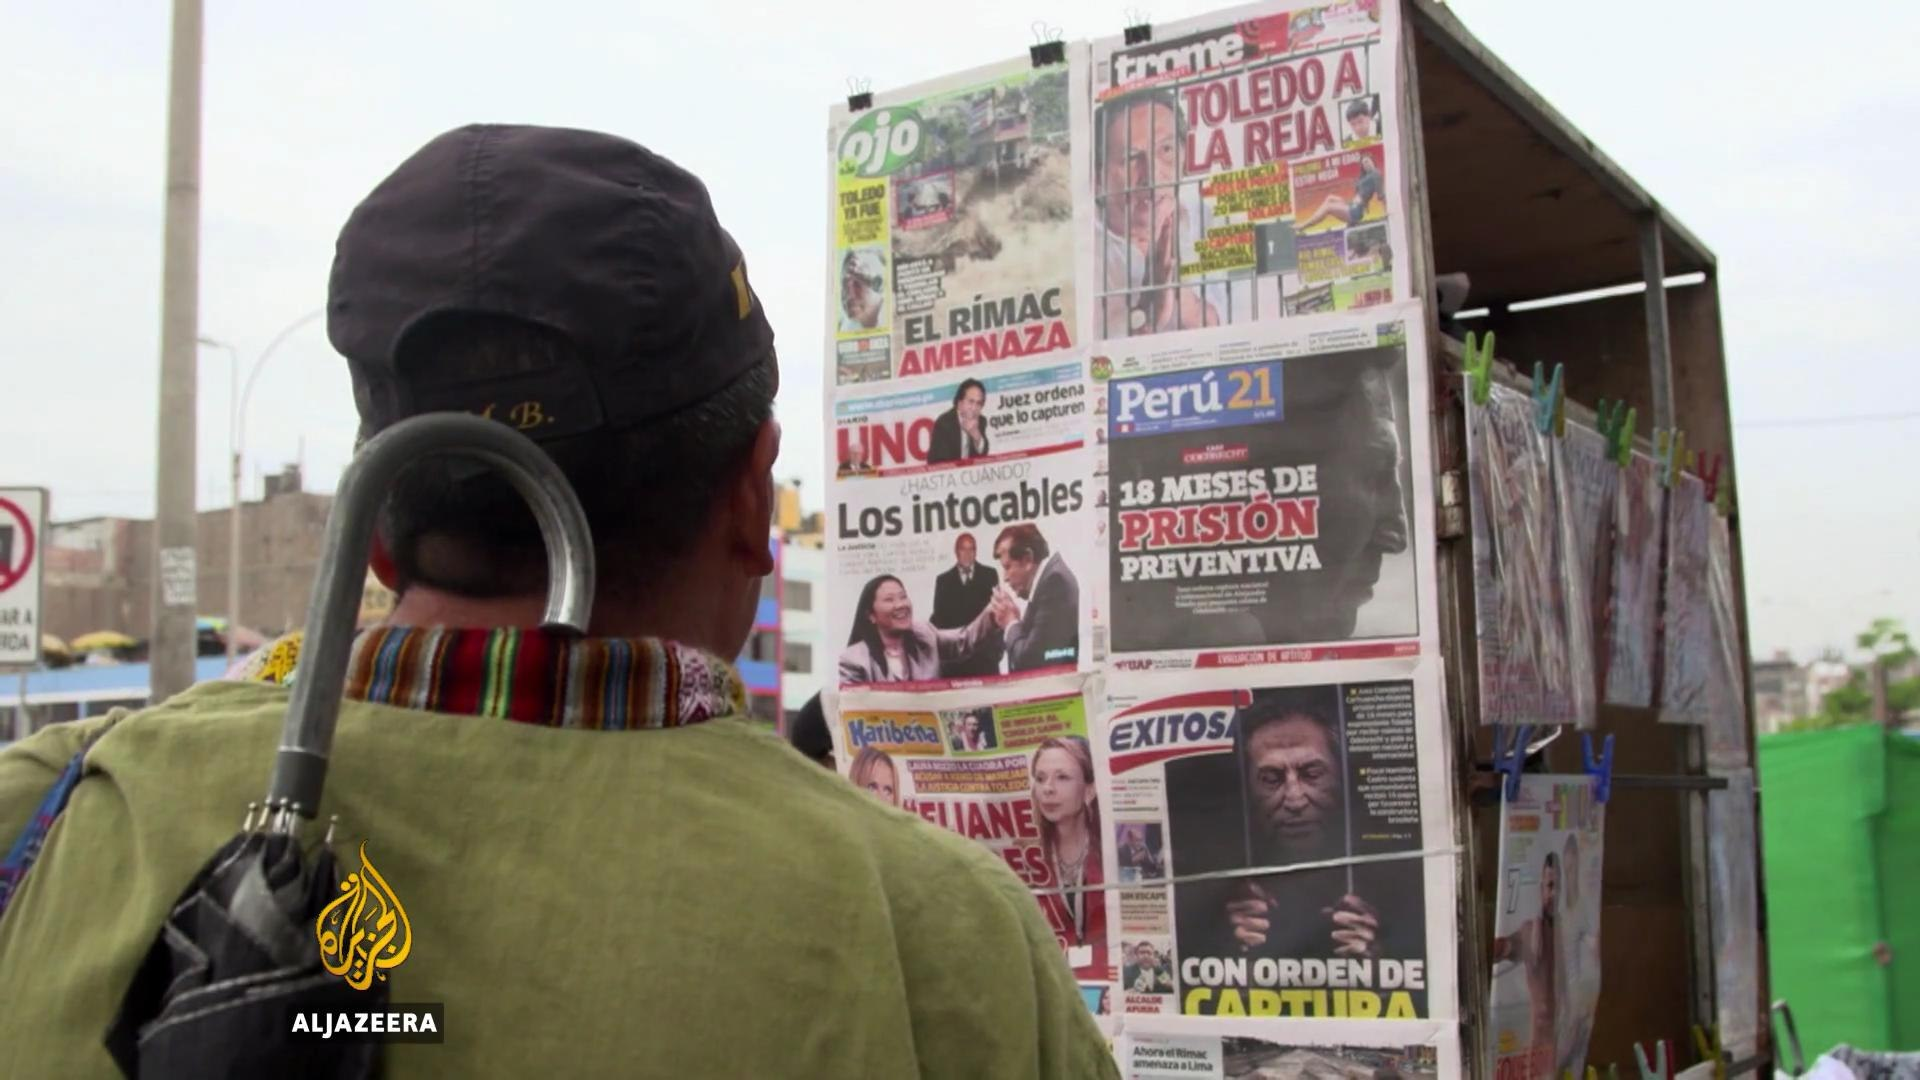 Nuqanchik: Peruvian news and the politics of language - The Listening Post (Feature)